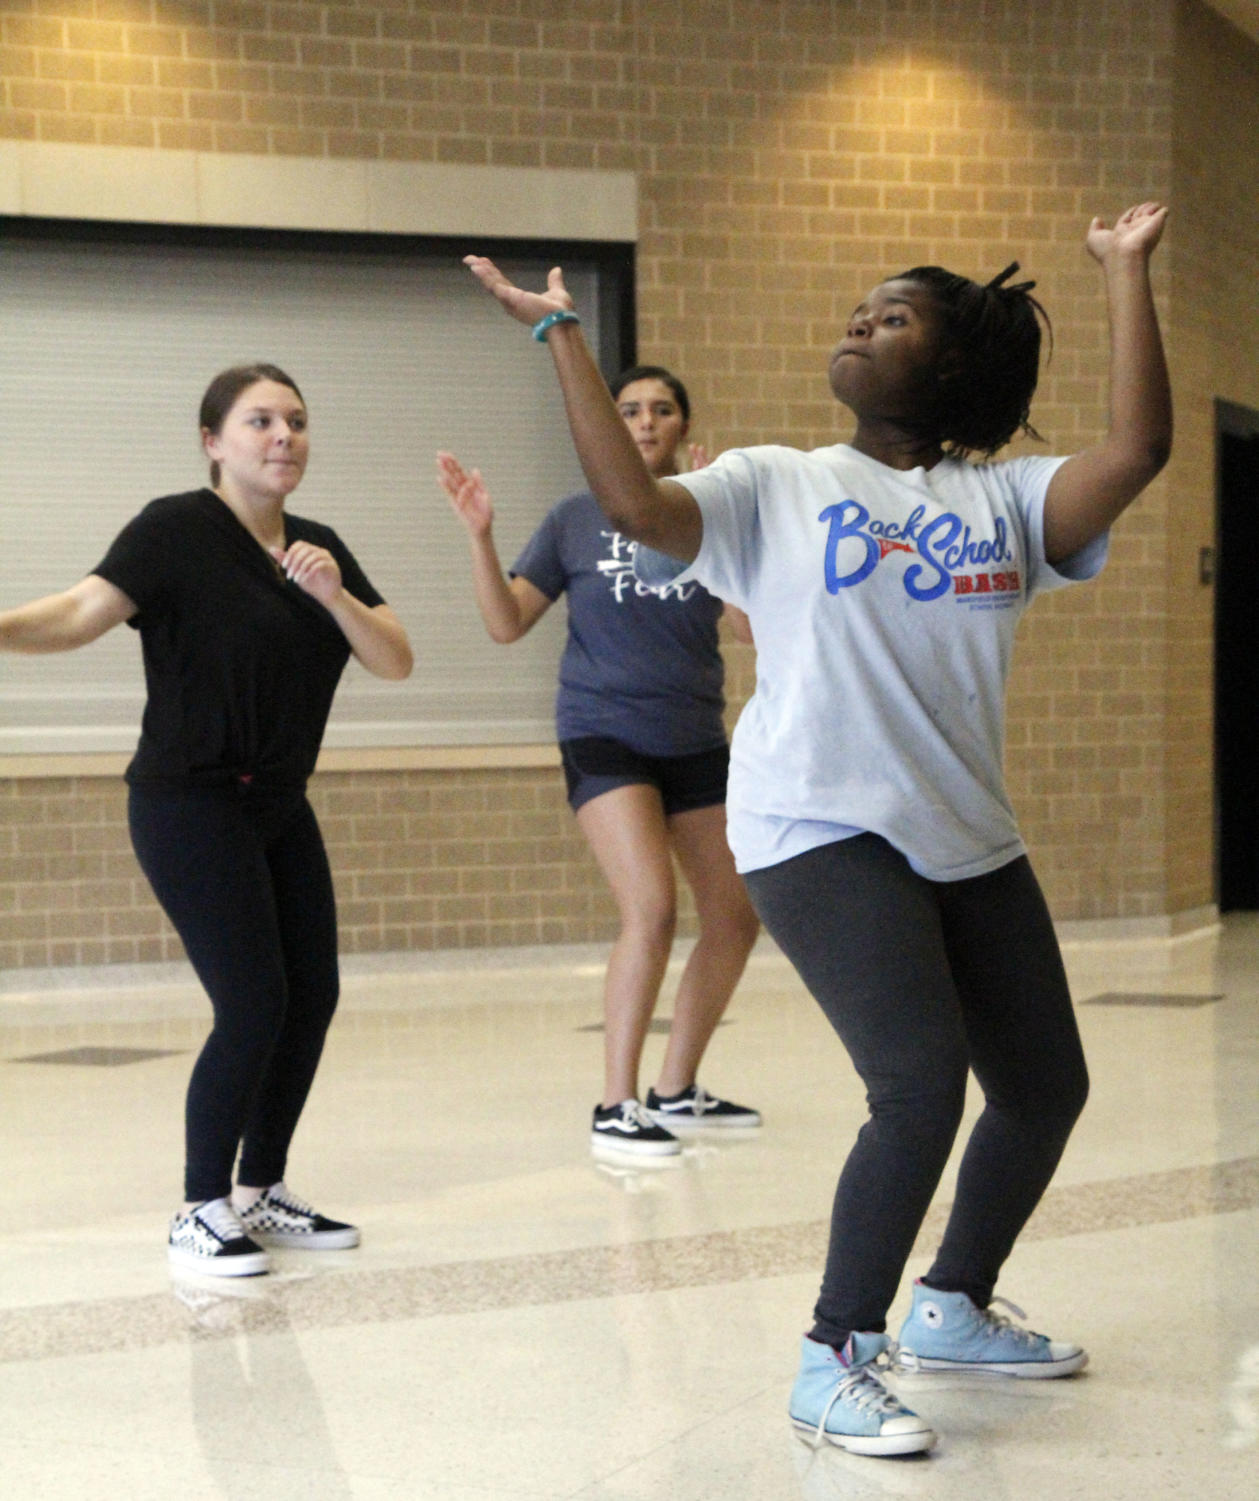 The capitan of the Step team, Amara Shanks teaches the girls the first and second lieutenant tryout step routine.